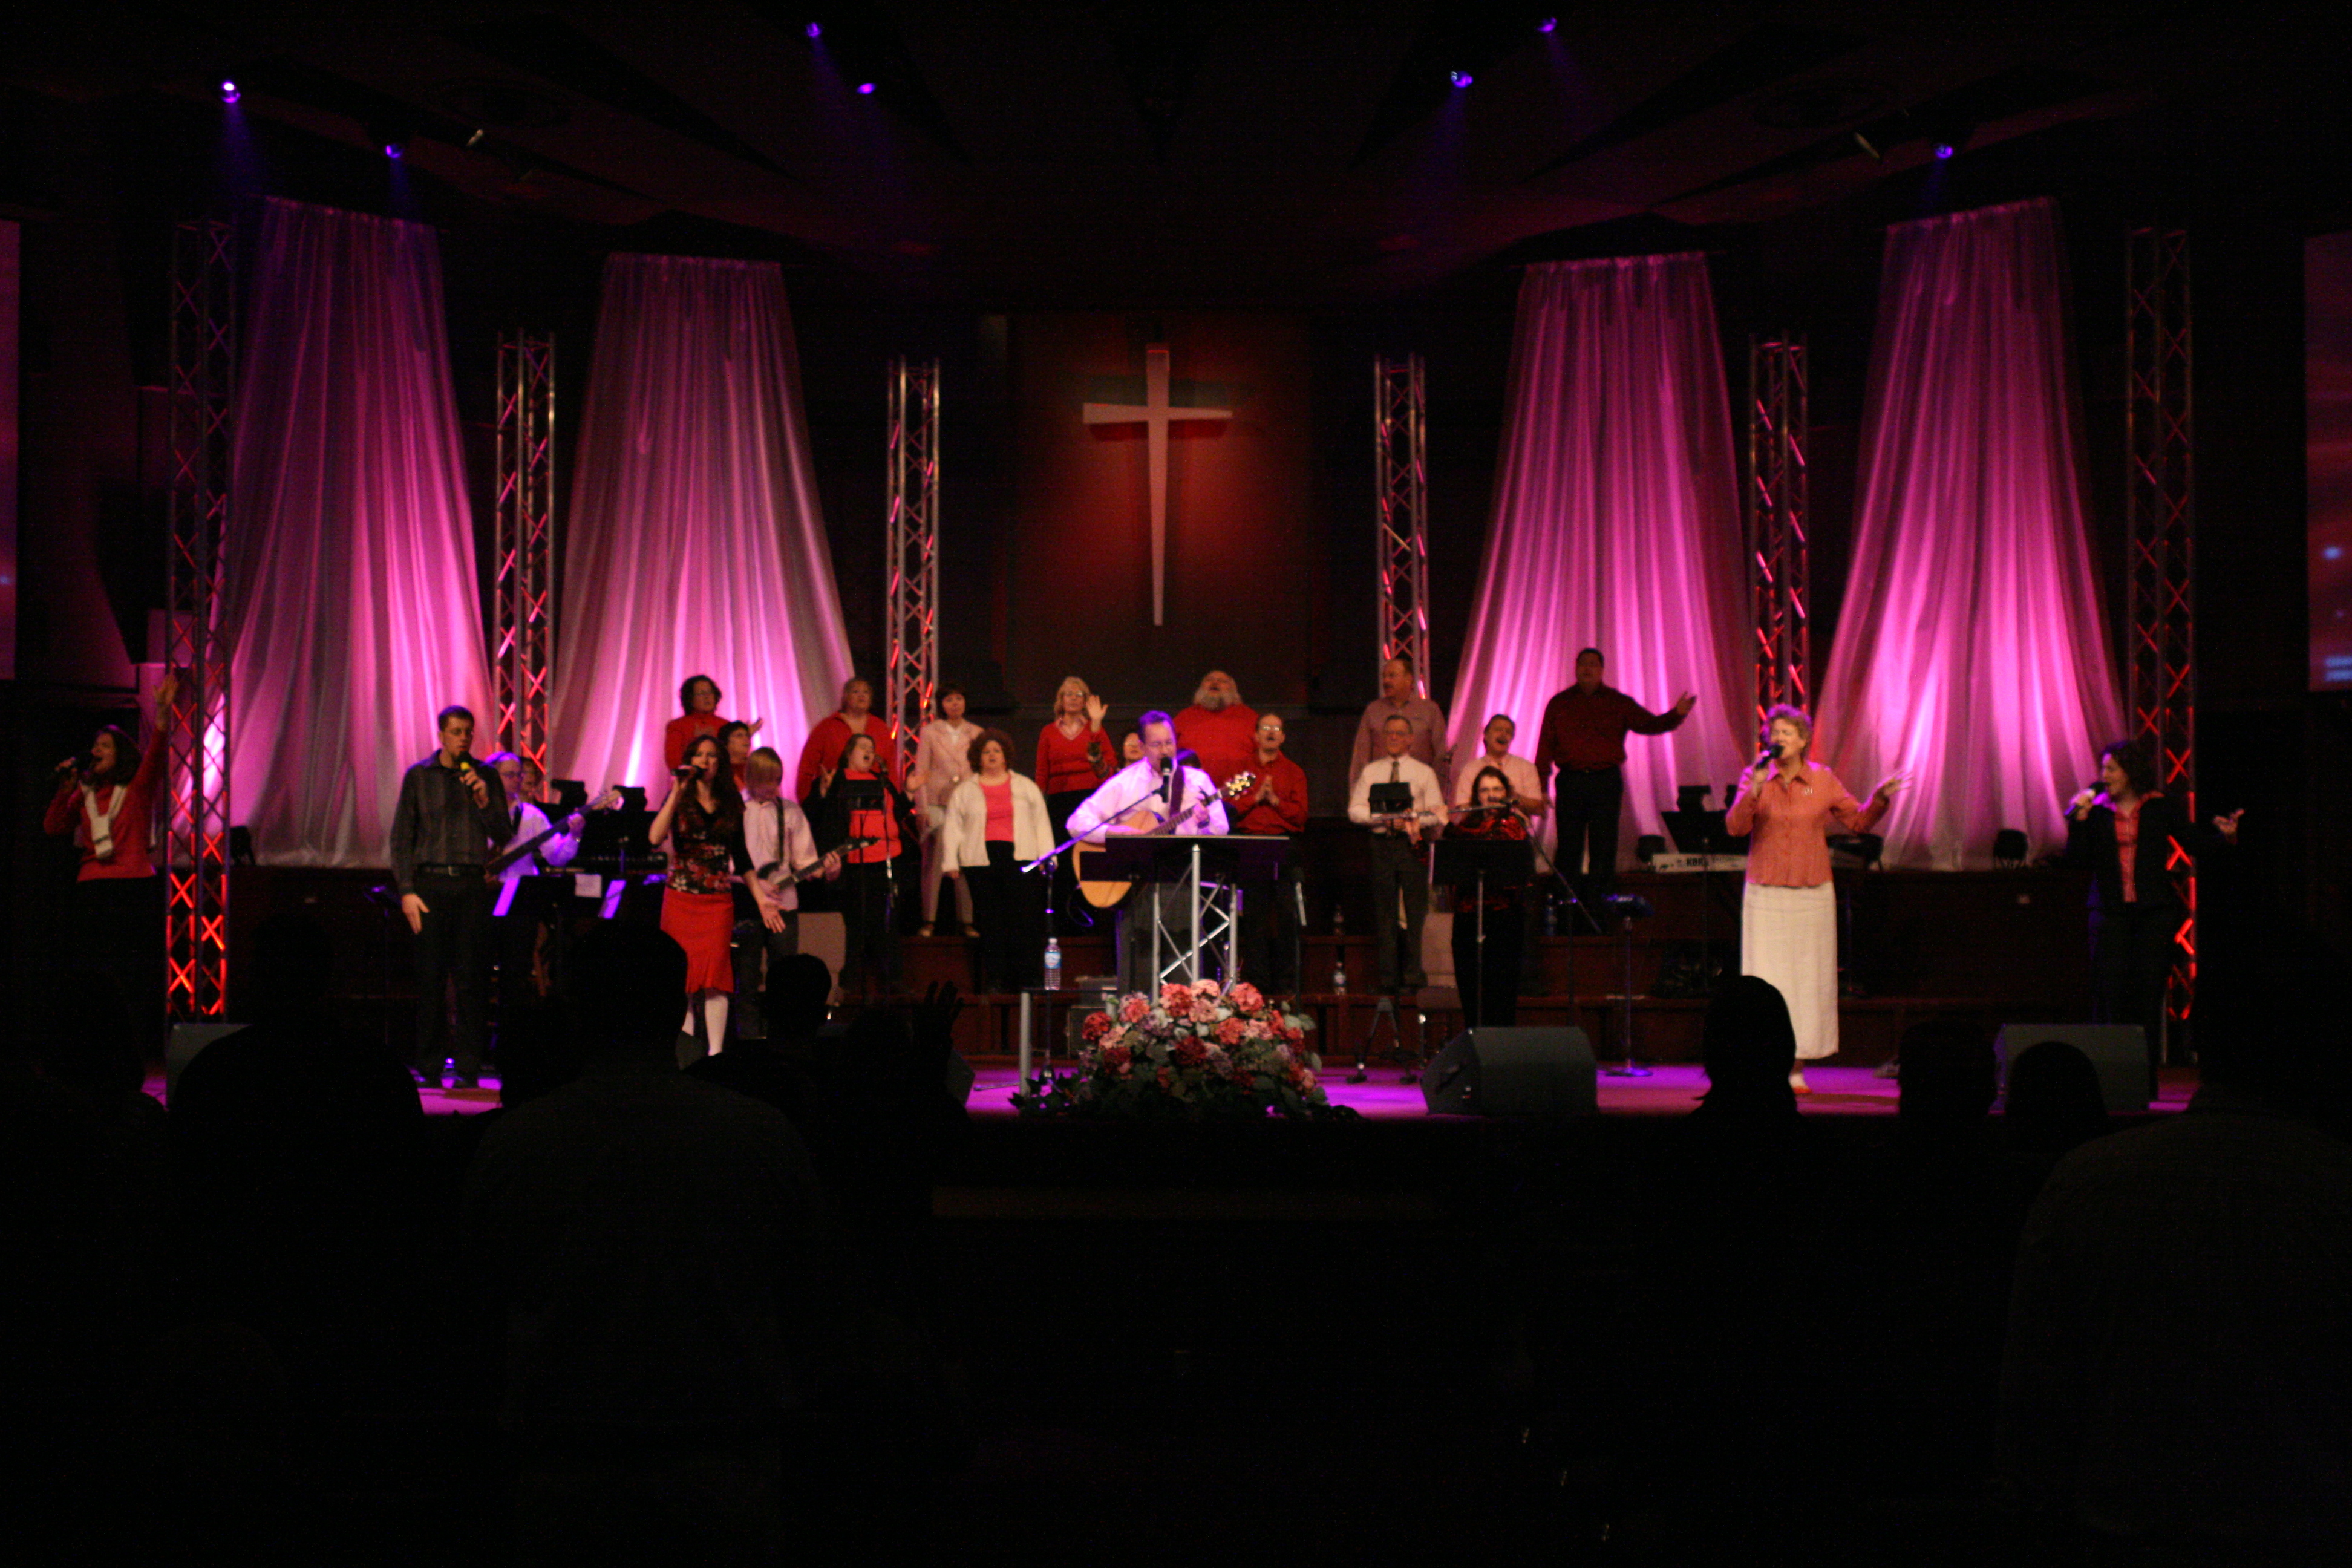 Church Stage Design And Design On